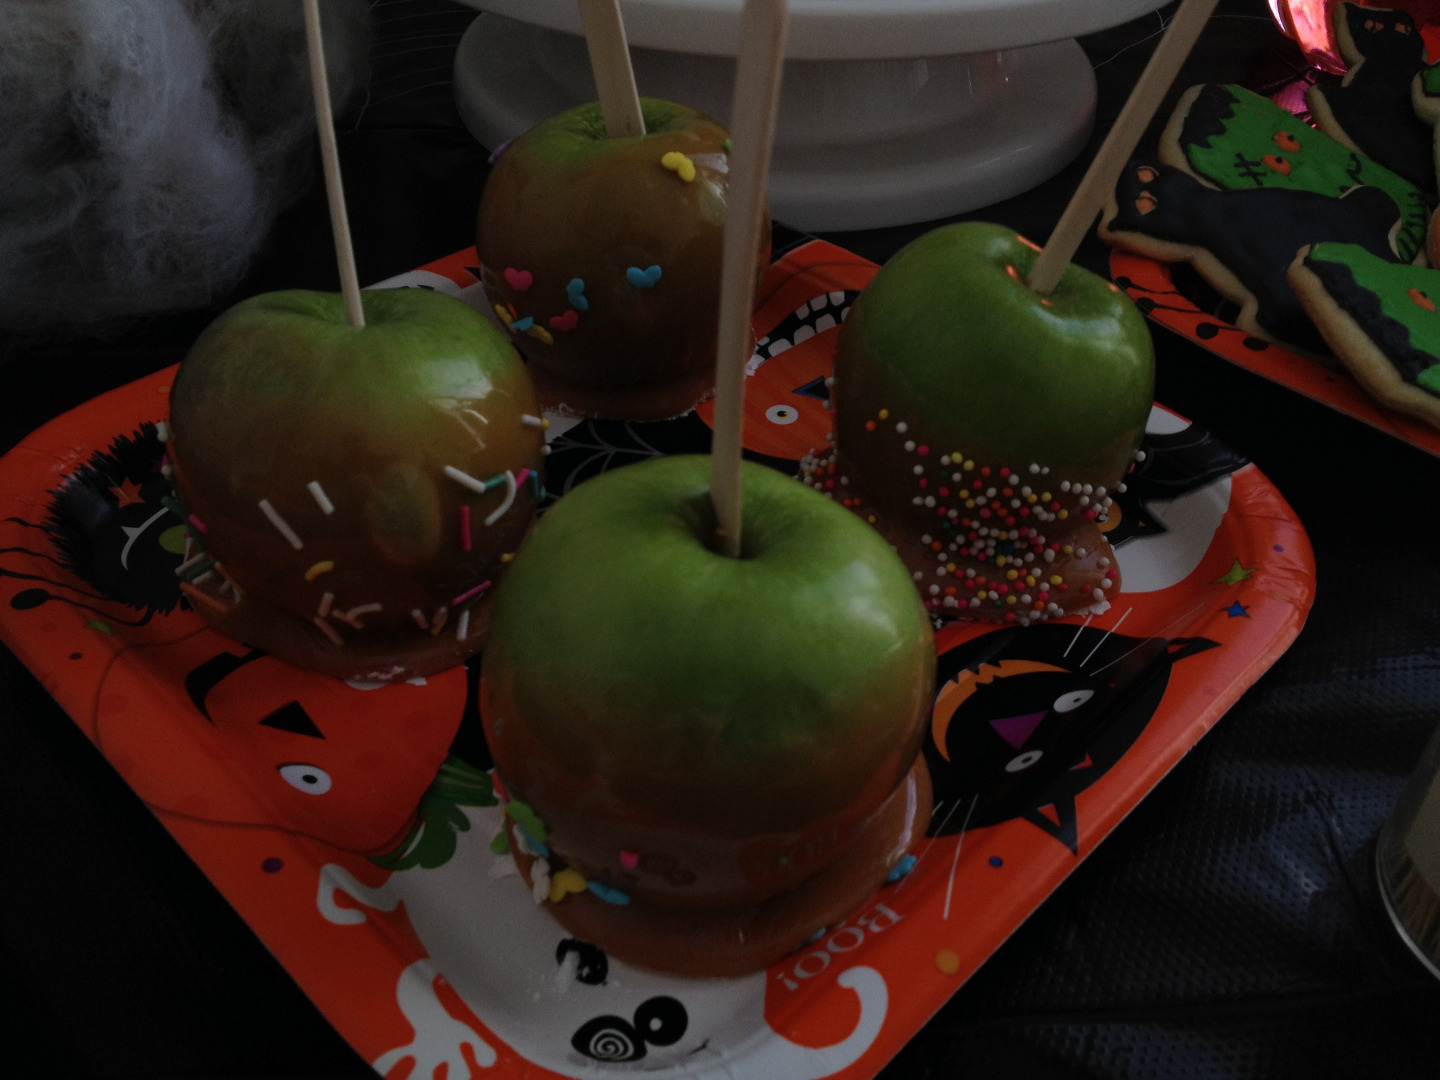 Picture of Caramel Apples